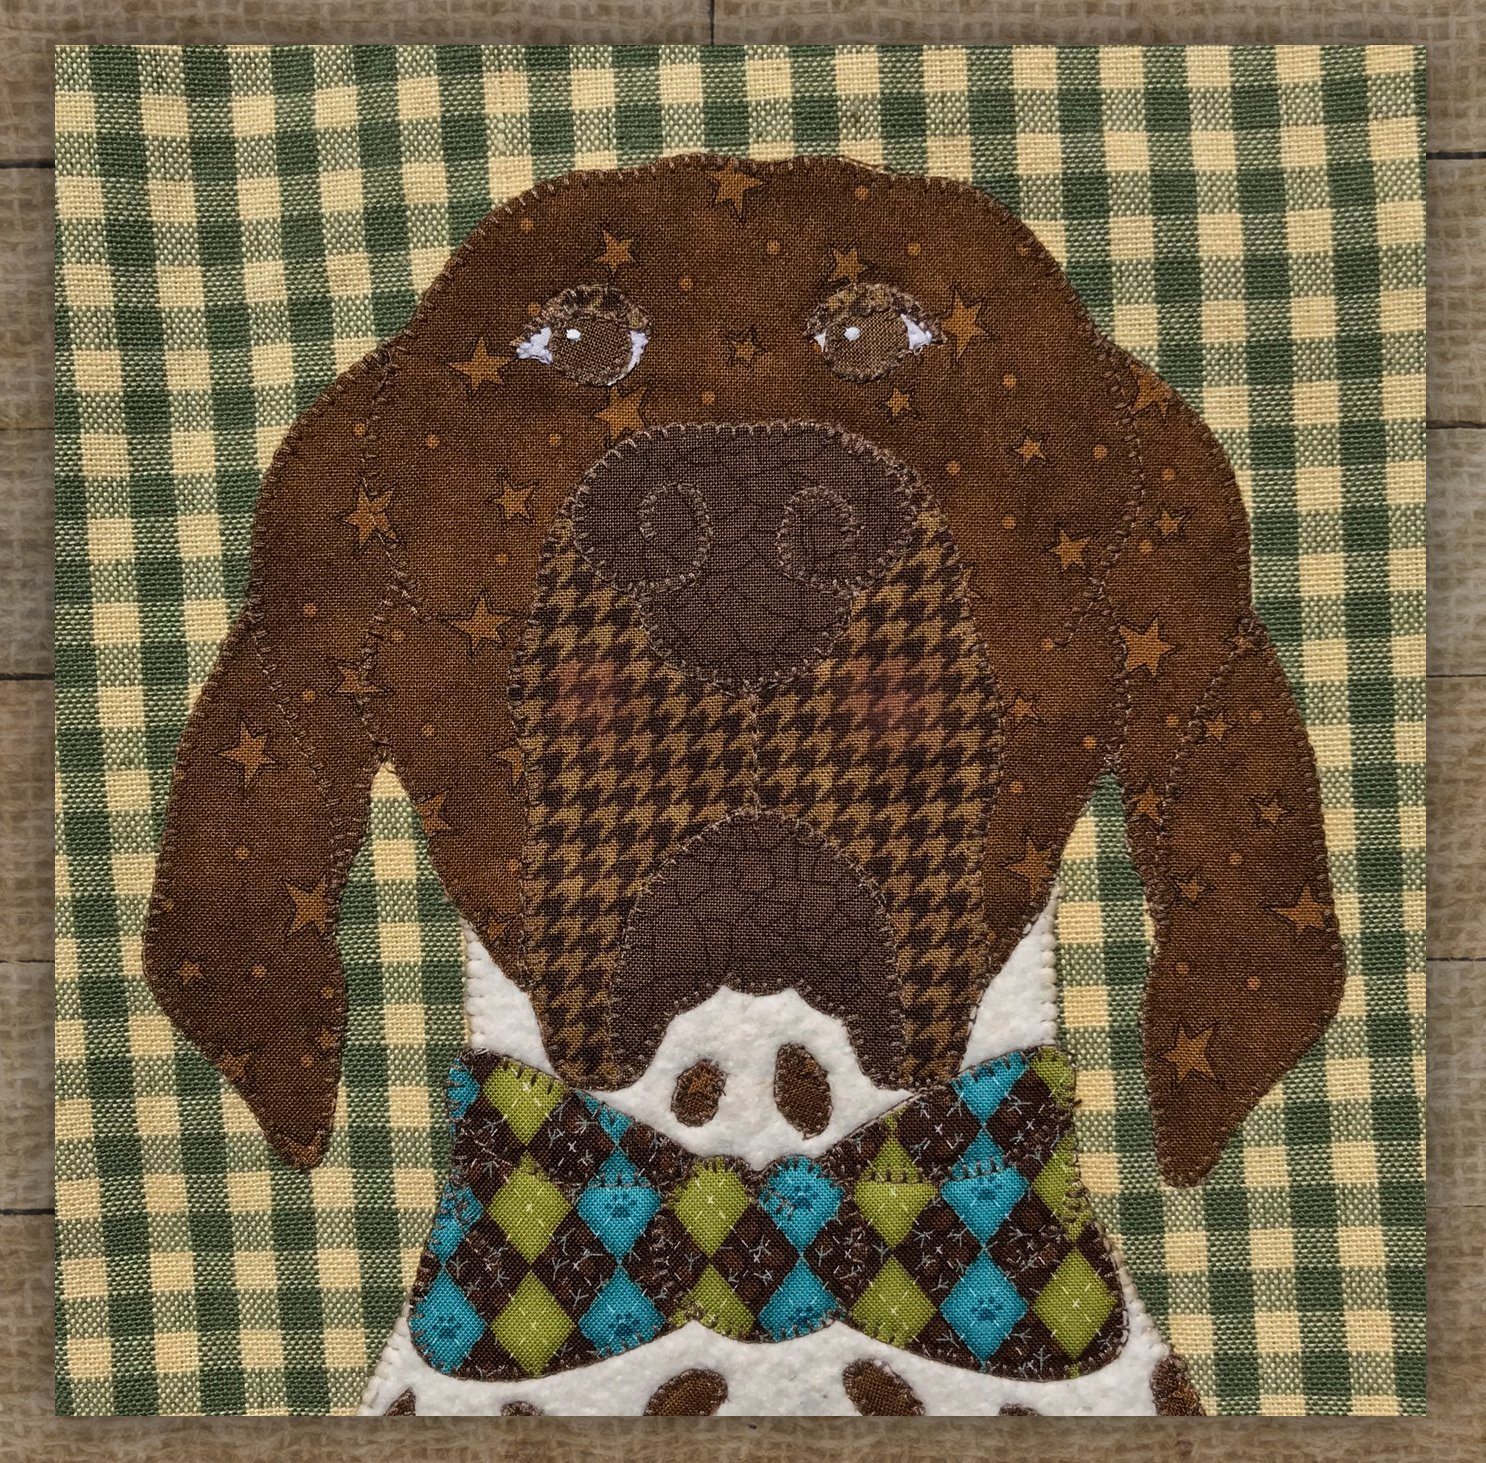 German Shorthaired Pointer - COMING SOON